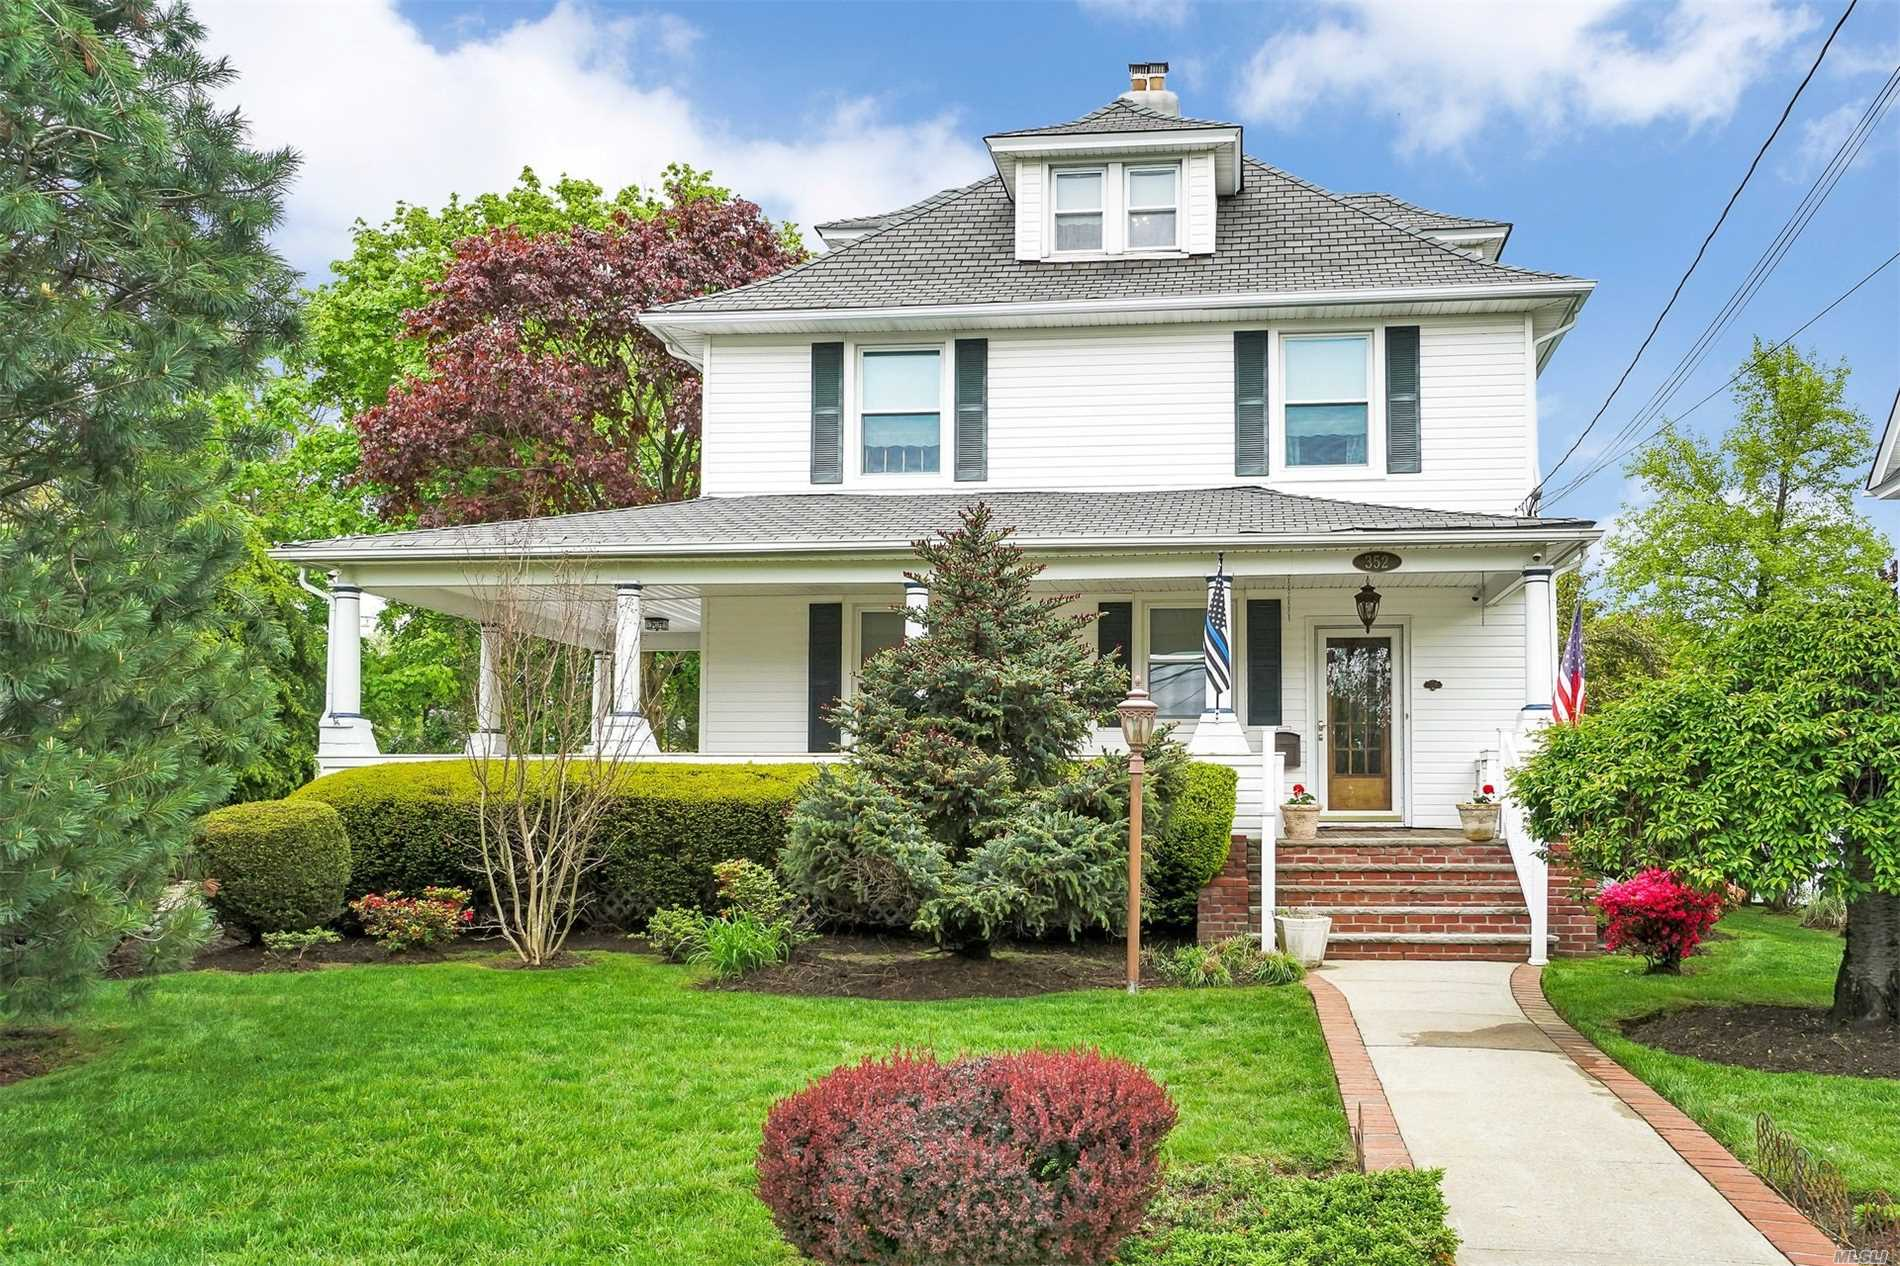 Gorgeous updated colonial in historic Freeport district. Boasting updated but original wrap around porch, wood floors, new kitchen, and updated bathrooms. Original charm with modern finishes. Mother daughter with proper permits and possible guest house with proper permits.